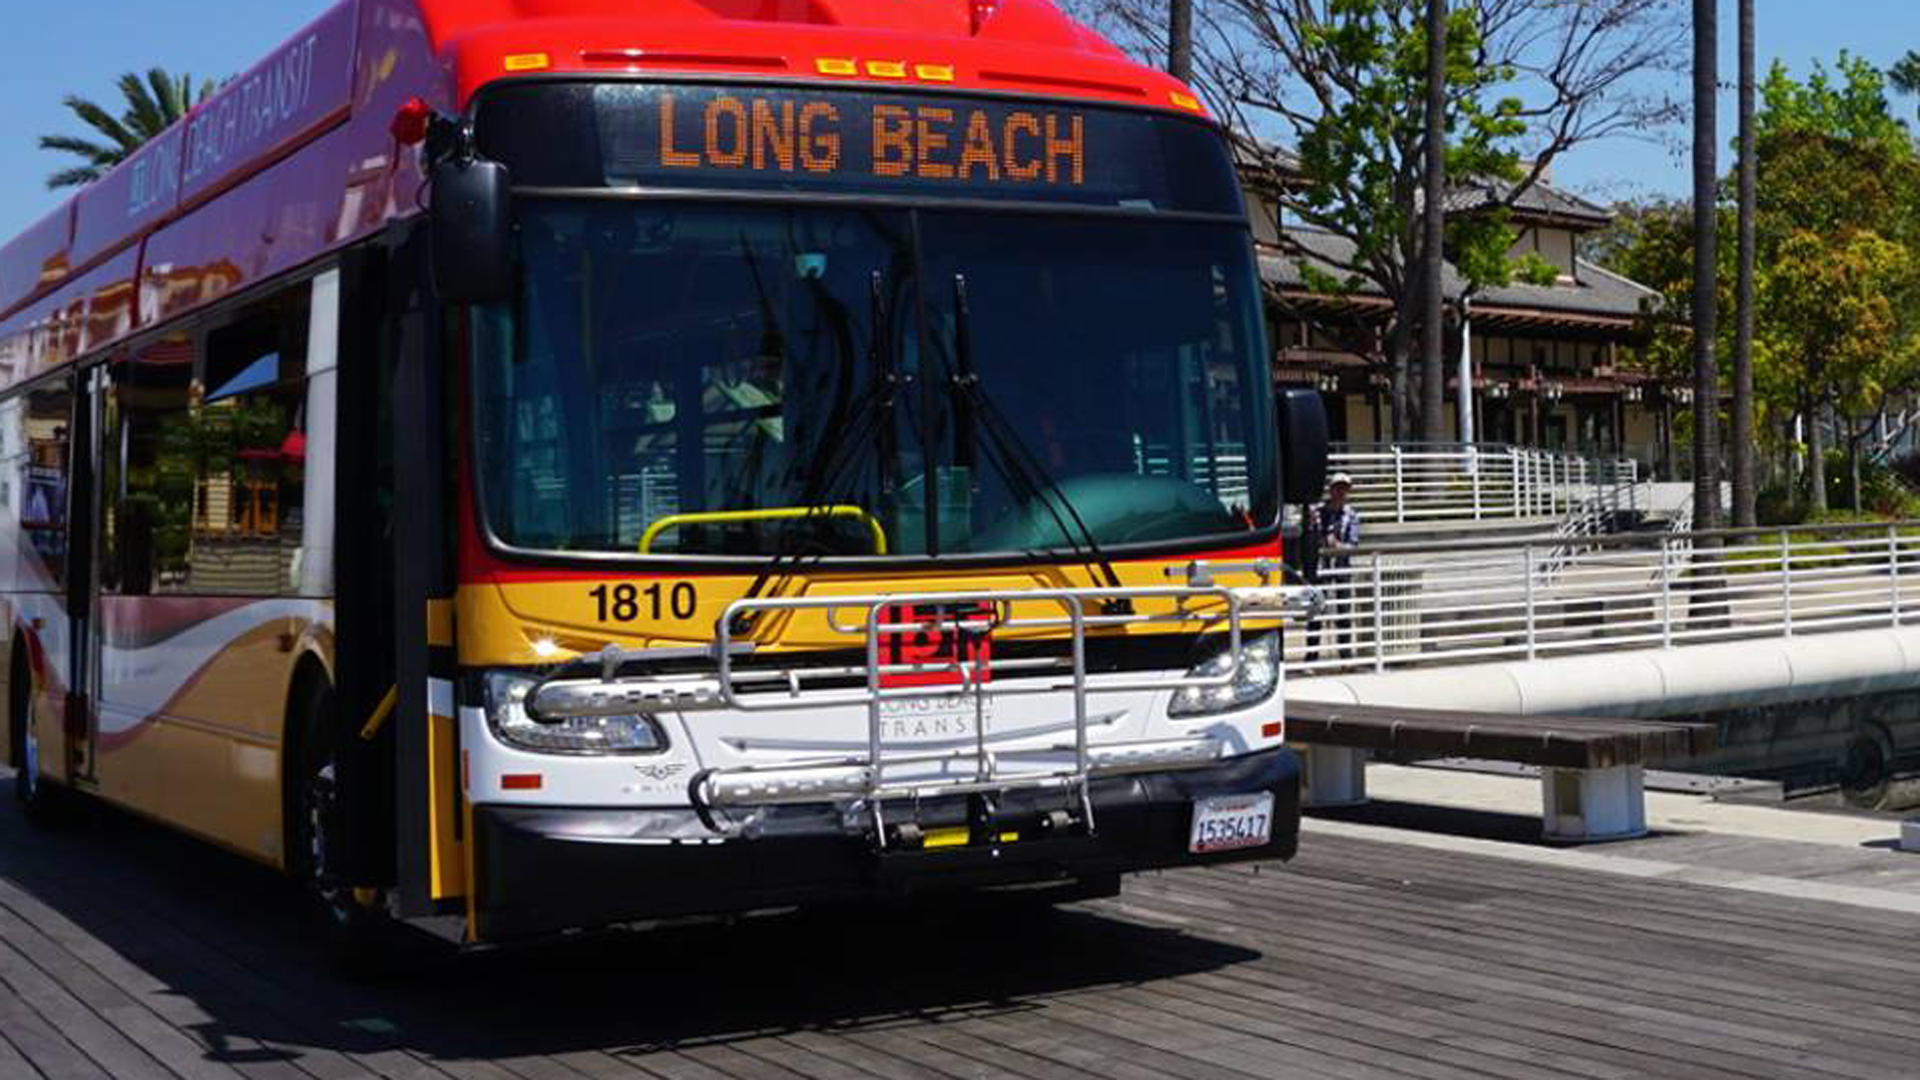 A Long Beach Transit bus is seen in a photo posted to the agency's Facebook page in June 2018.